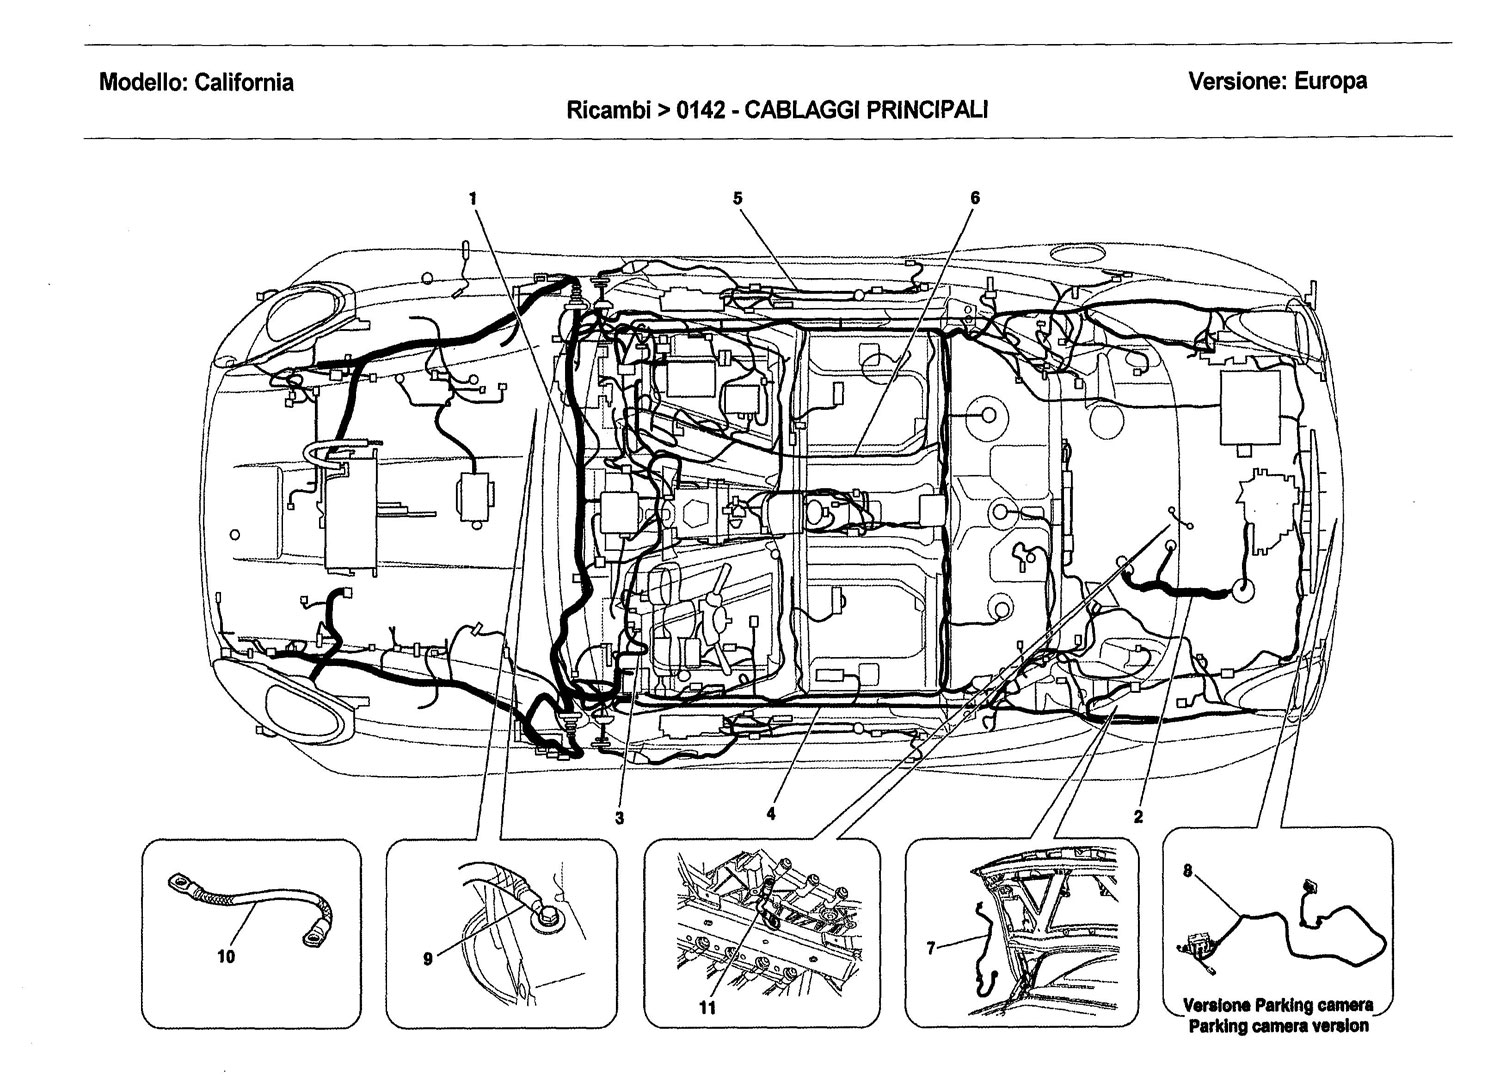 2014 Chevy Equinox Stereo Wiring Diagrams Automotive on nissan pathfinder engine diagram